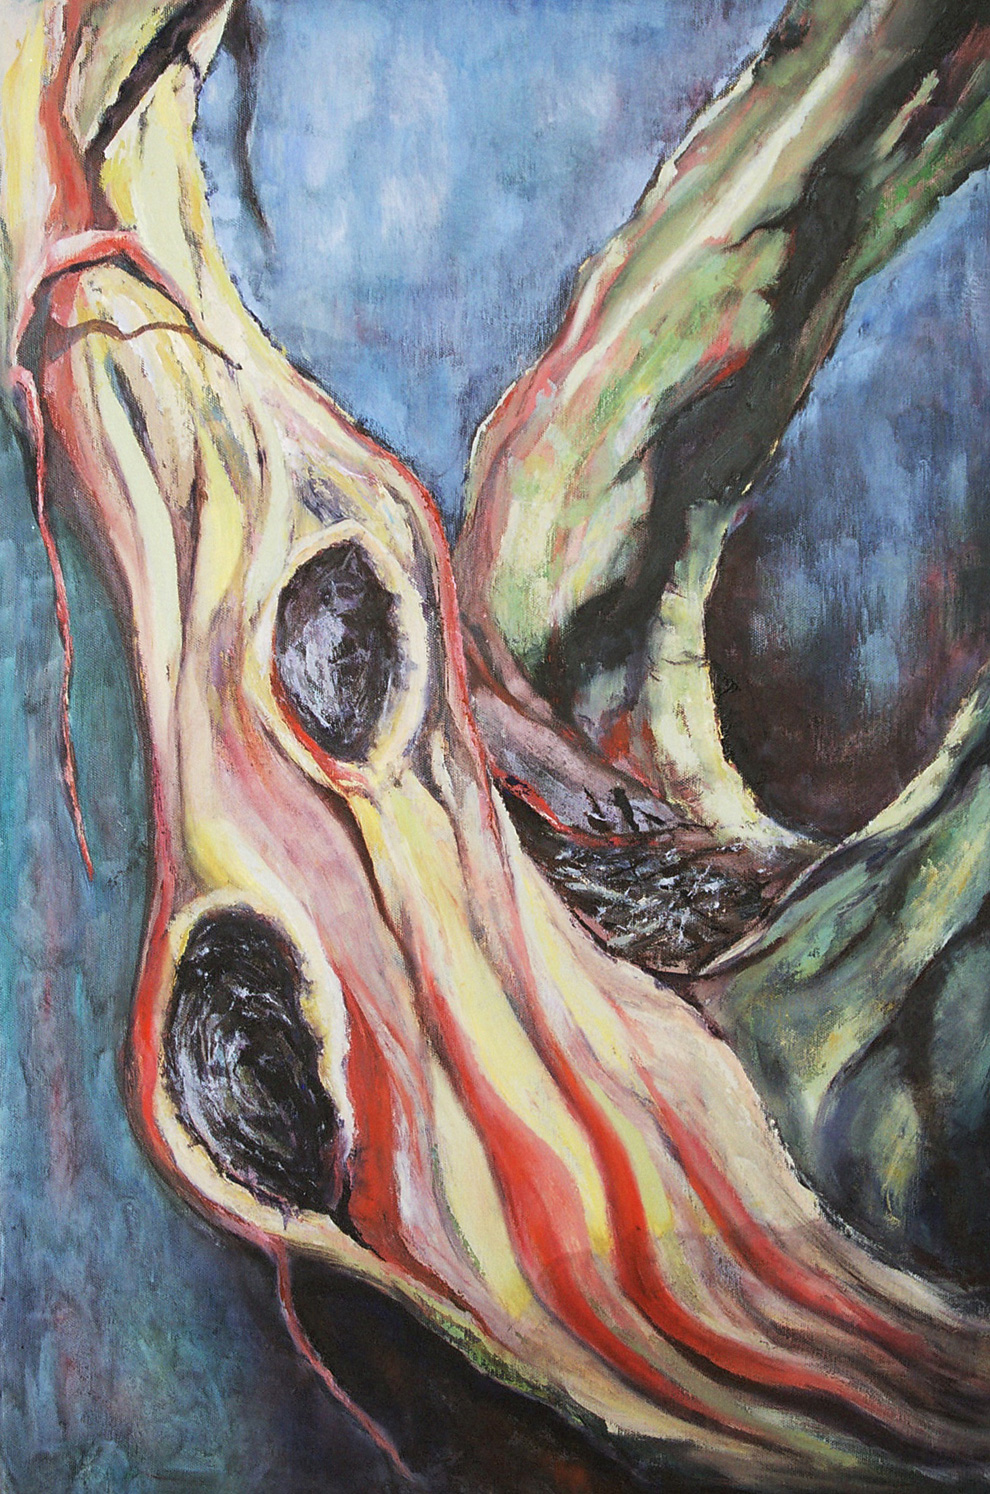 snow-gum-oil-on-canvas-50cm-x-76cm